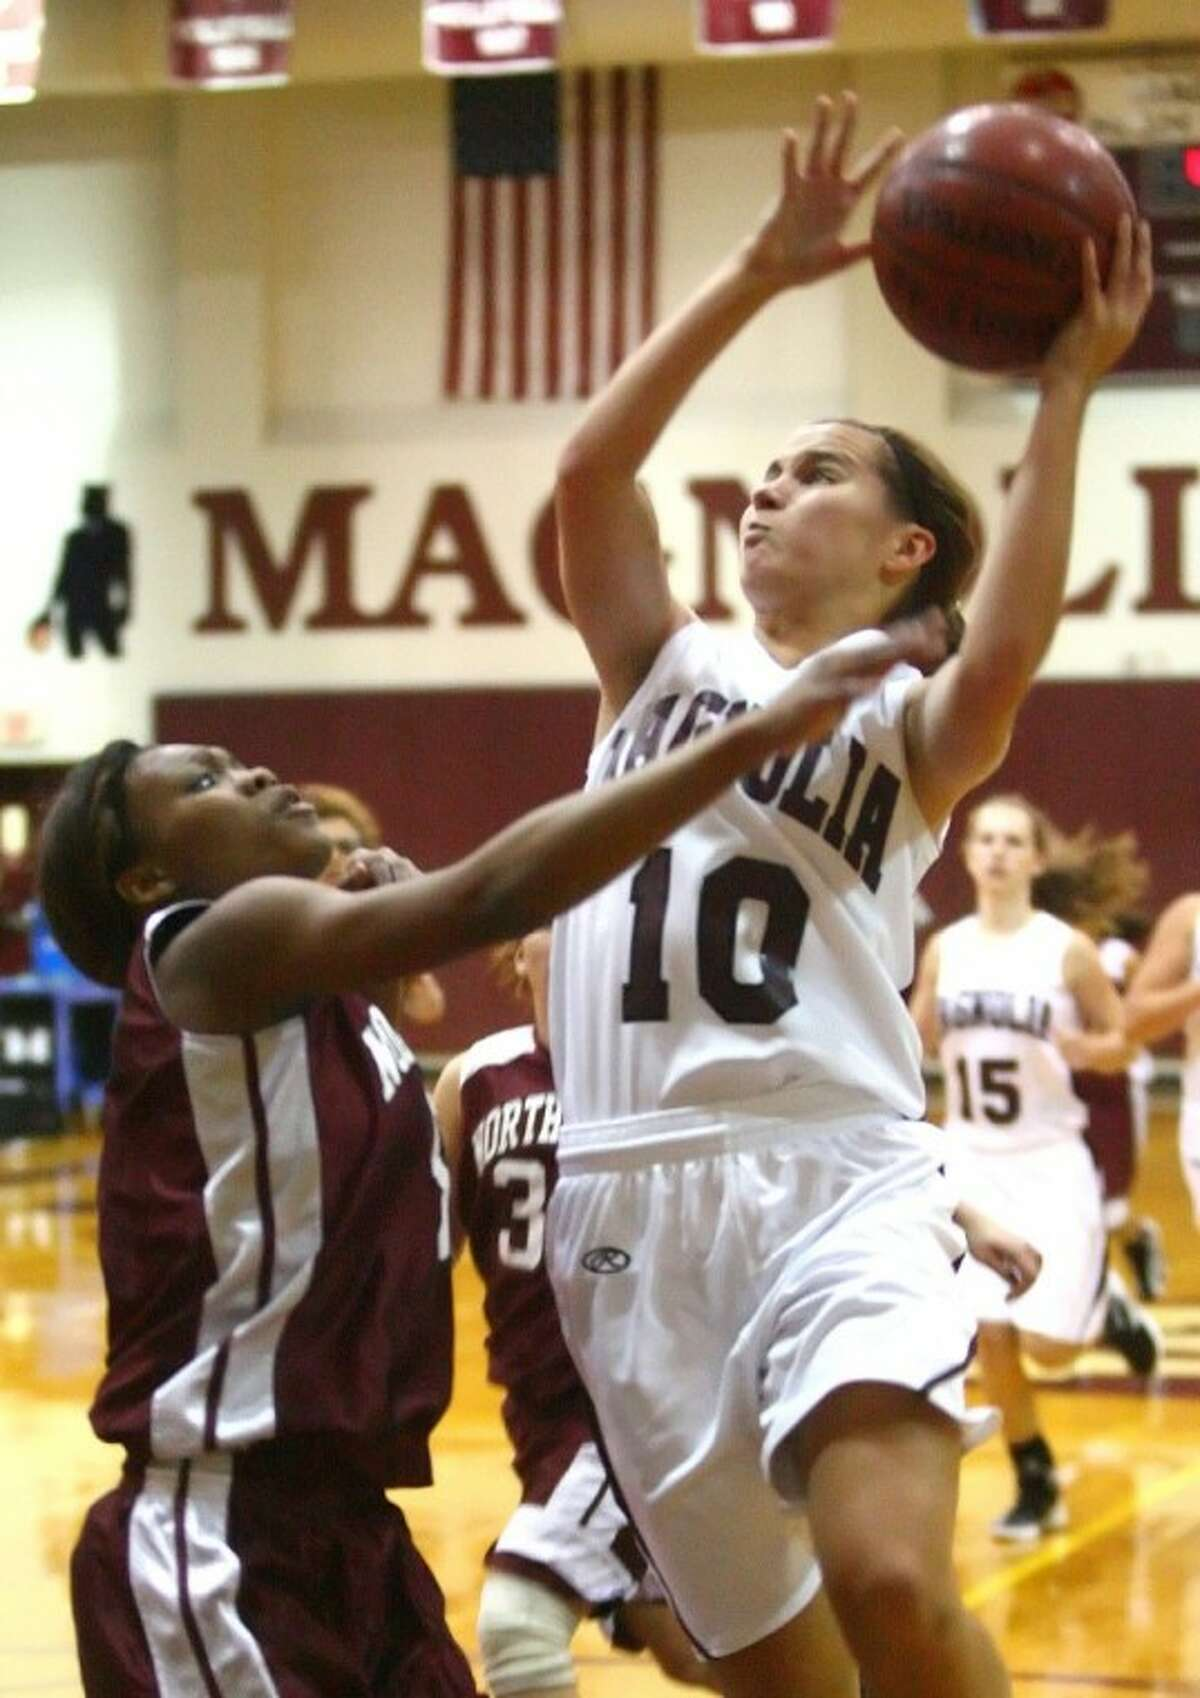 Magnolia's Allison Abendschein shoots over a Northbrook defender. Abendschein was named the All-Montgomery County Co-Offensive Most Valuable Player.